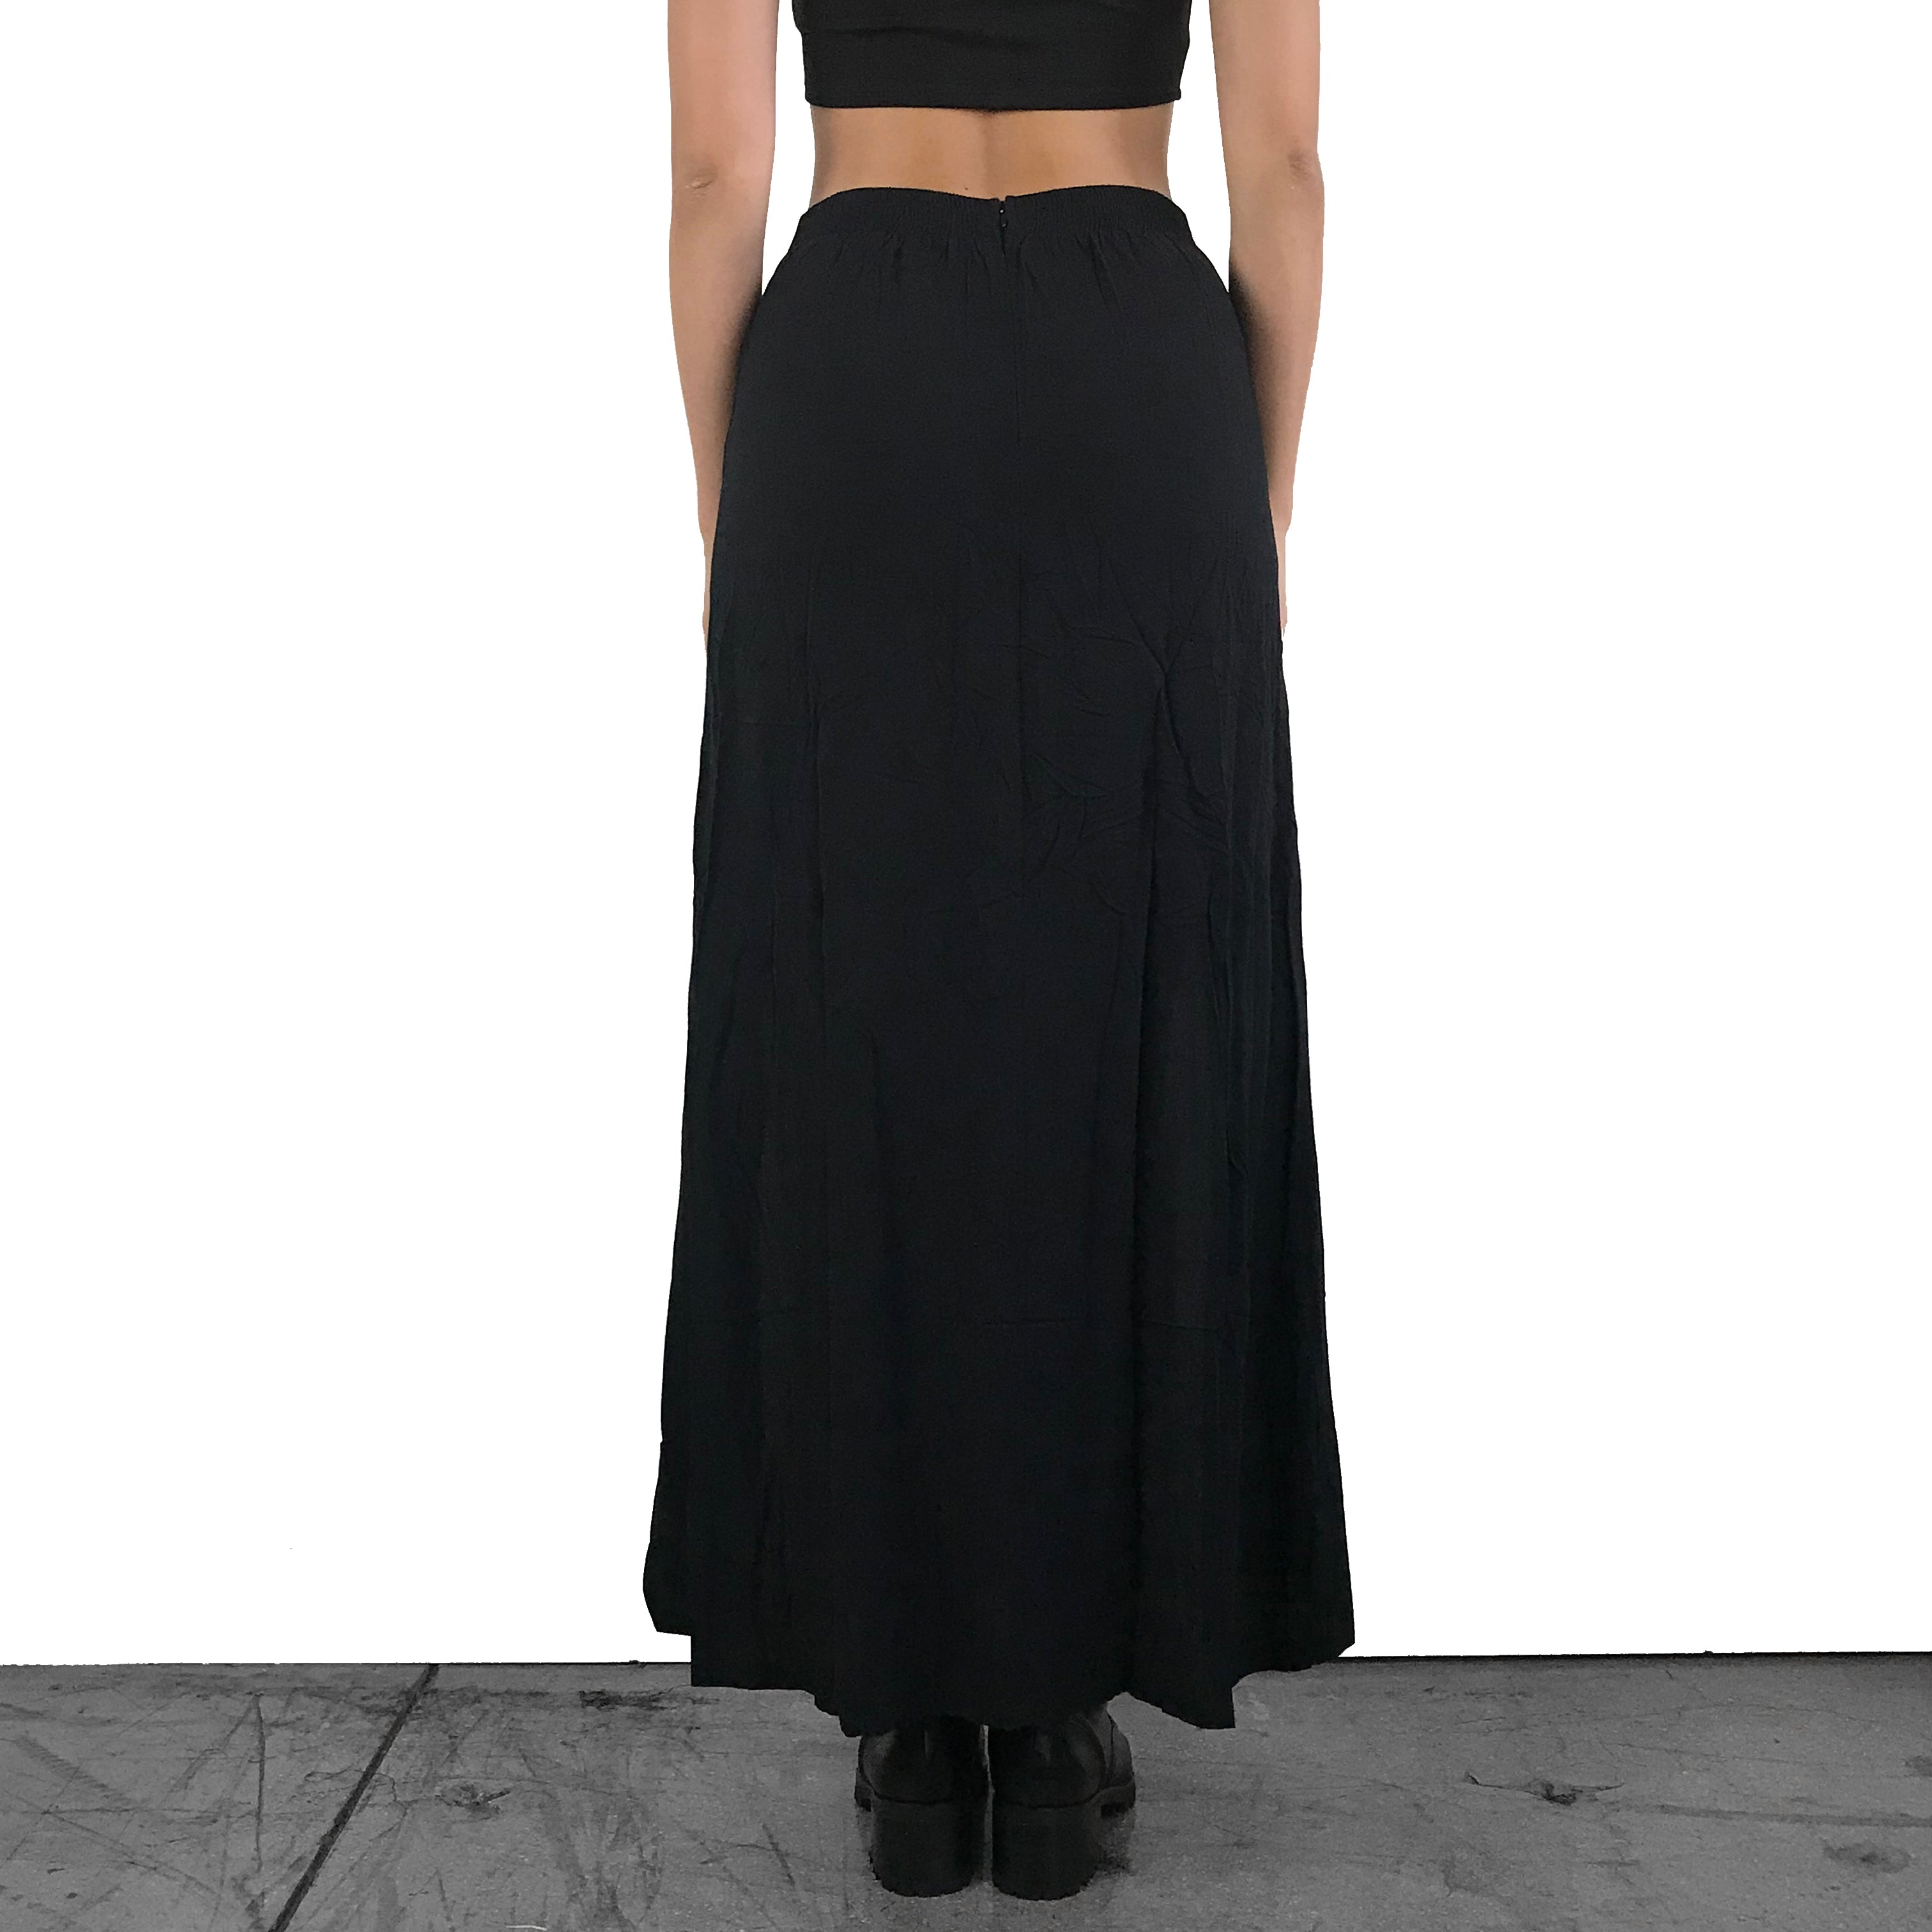 41584690733 Season of The Witch Corset Maxi Skirt – FOXBLOOD SHOP